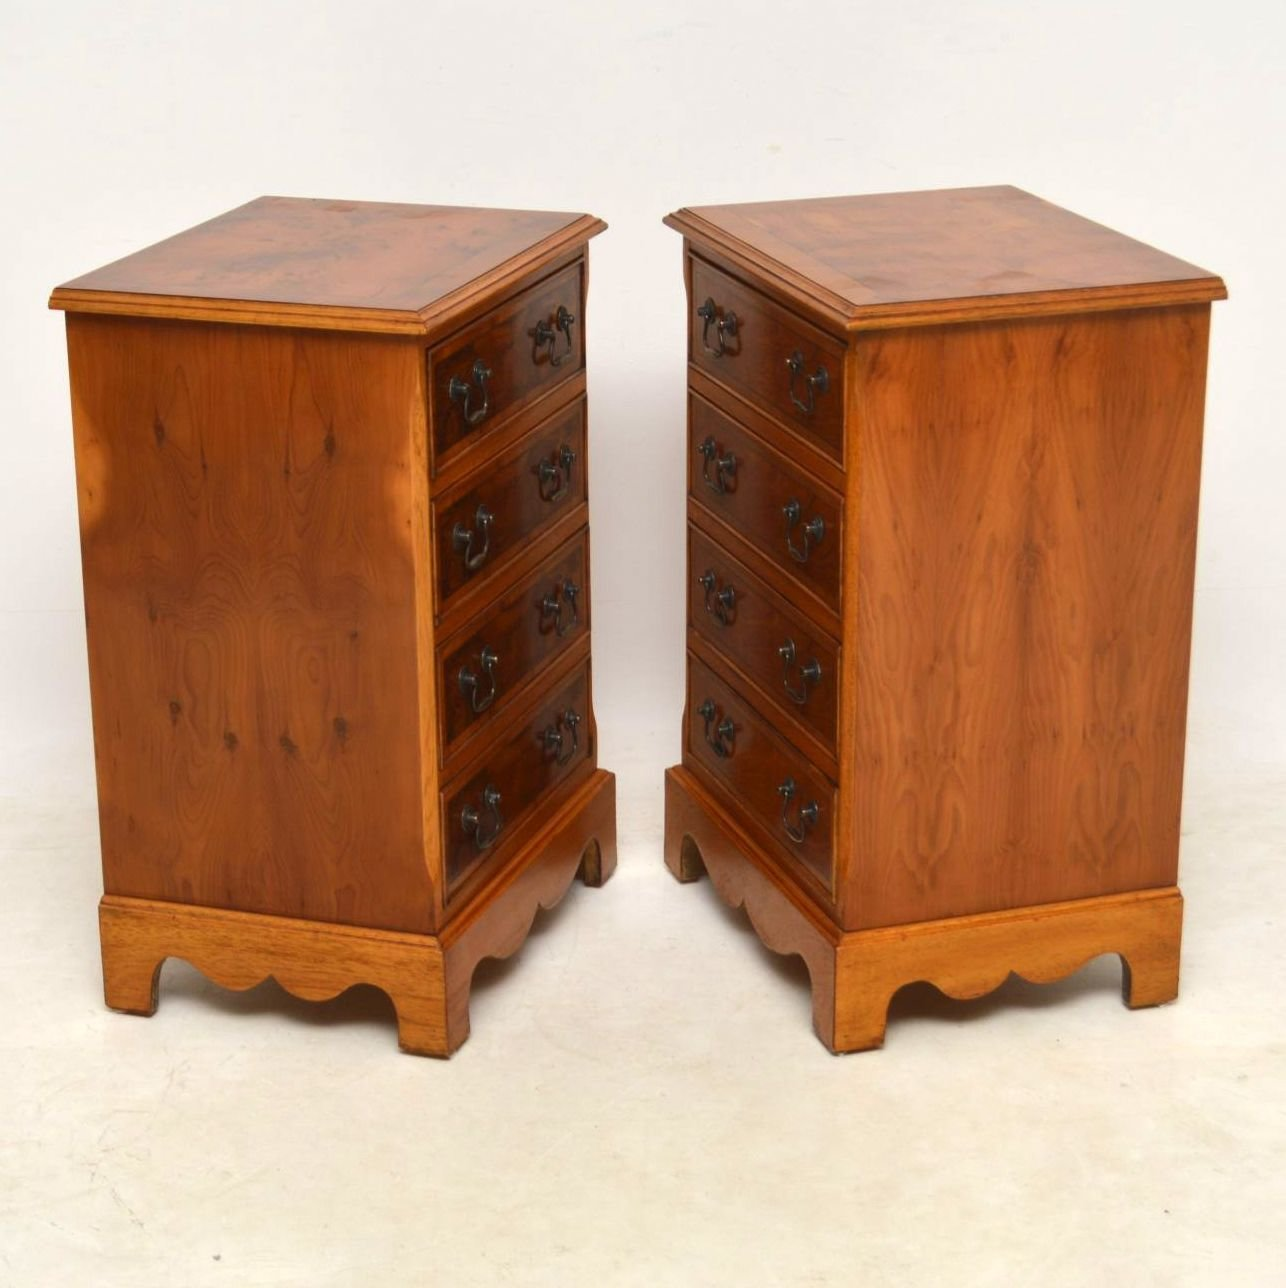 Best Pair Of Antique Yew Wood Bedside Chests Marylebone Antiques – Sellers Of 19Th Century Antique With Pictures